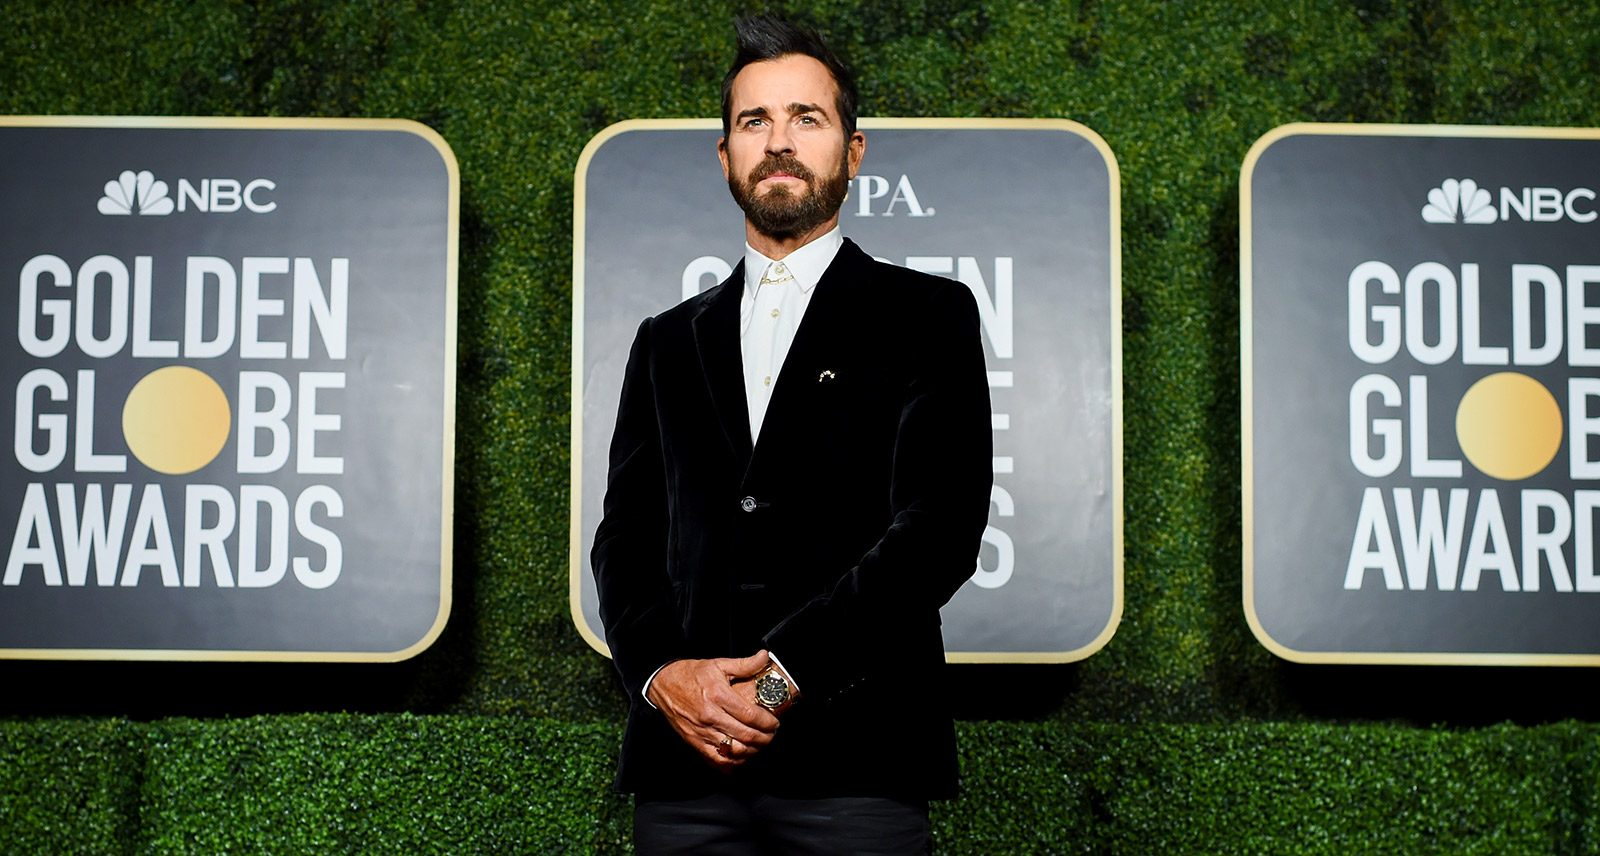 The 10 Best Dressed Men at the 2021 Golden Globes